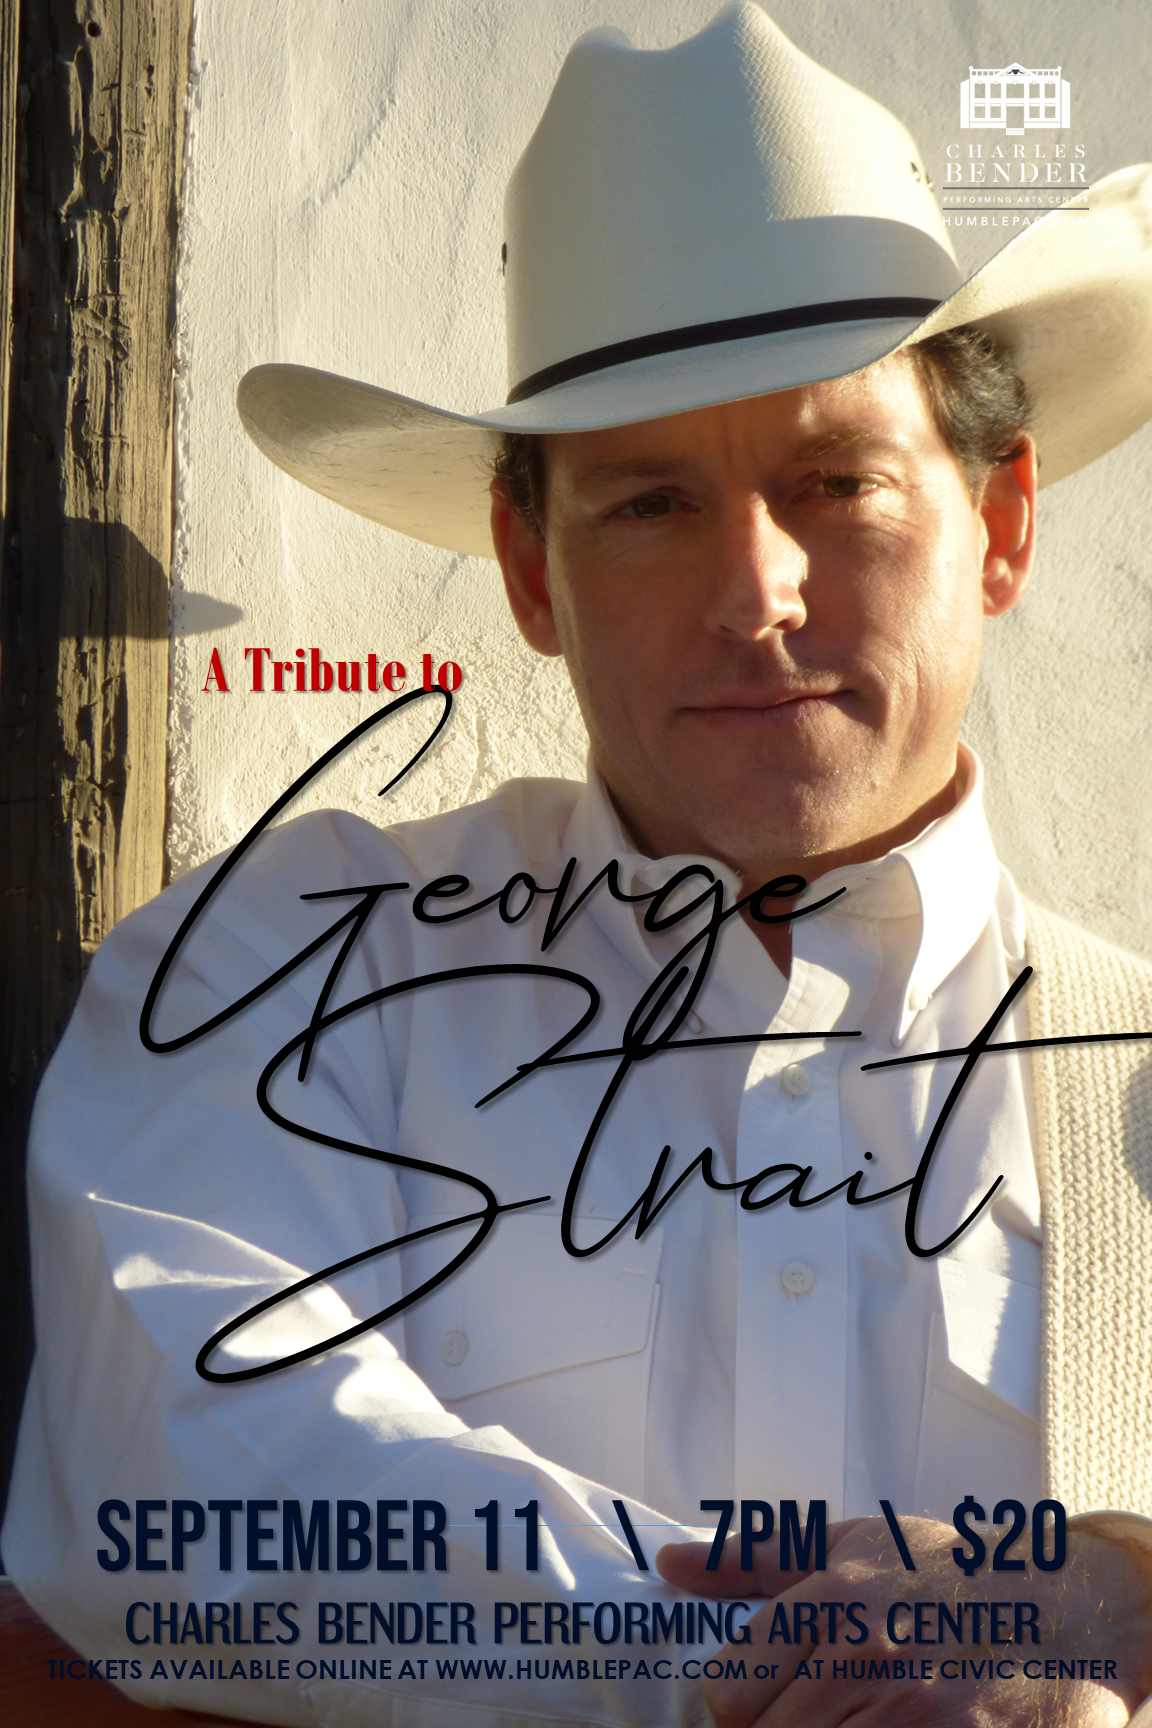 GEORGE STRAIT TRIBUTE CONCERT WITH DEREK SPENCE